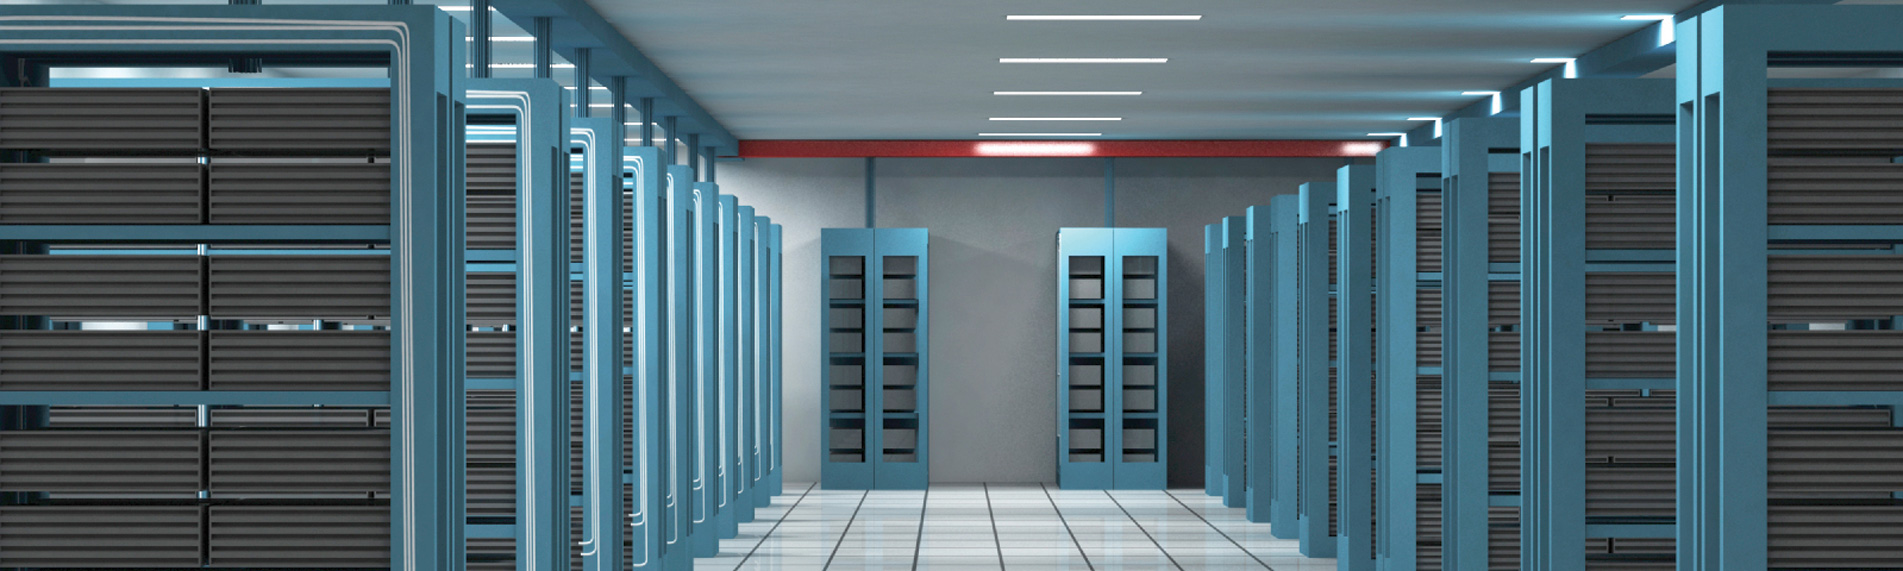 Data centre humidification & evaporative cooling